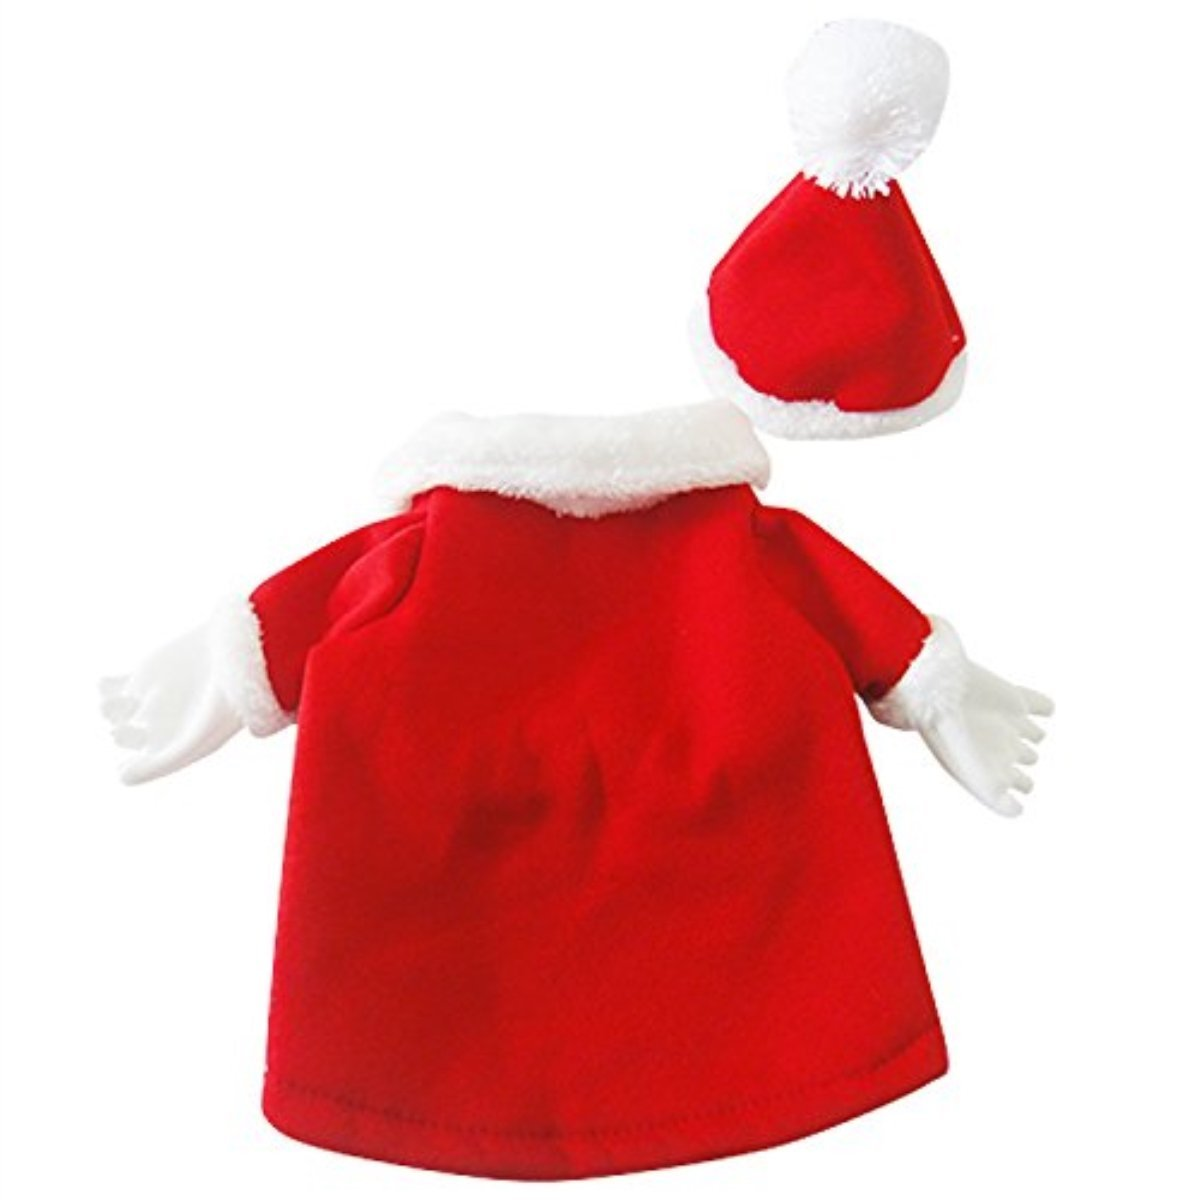 Mogoko Dog Cat Christmas Santa Claus Costume, Funny Pet Cosplay Costumes Suit a Cap, Puppy Fleece Outfits Warm Coat Animal Festival Apparel Clothes (M Size)